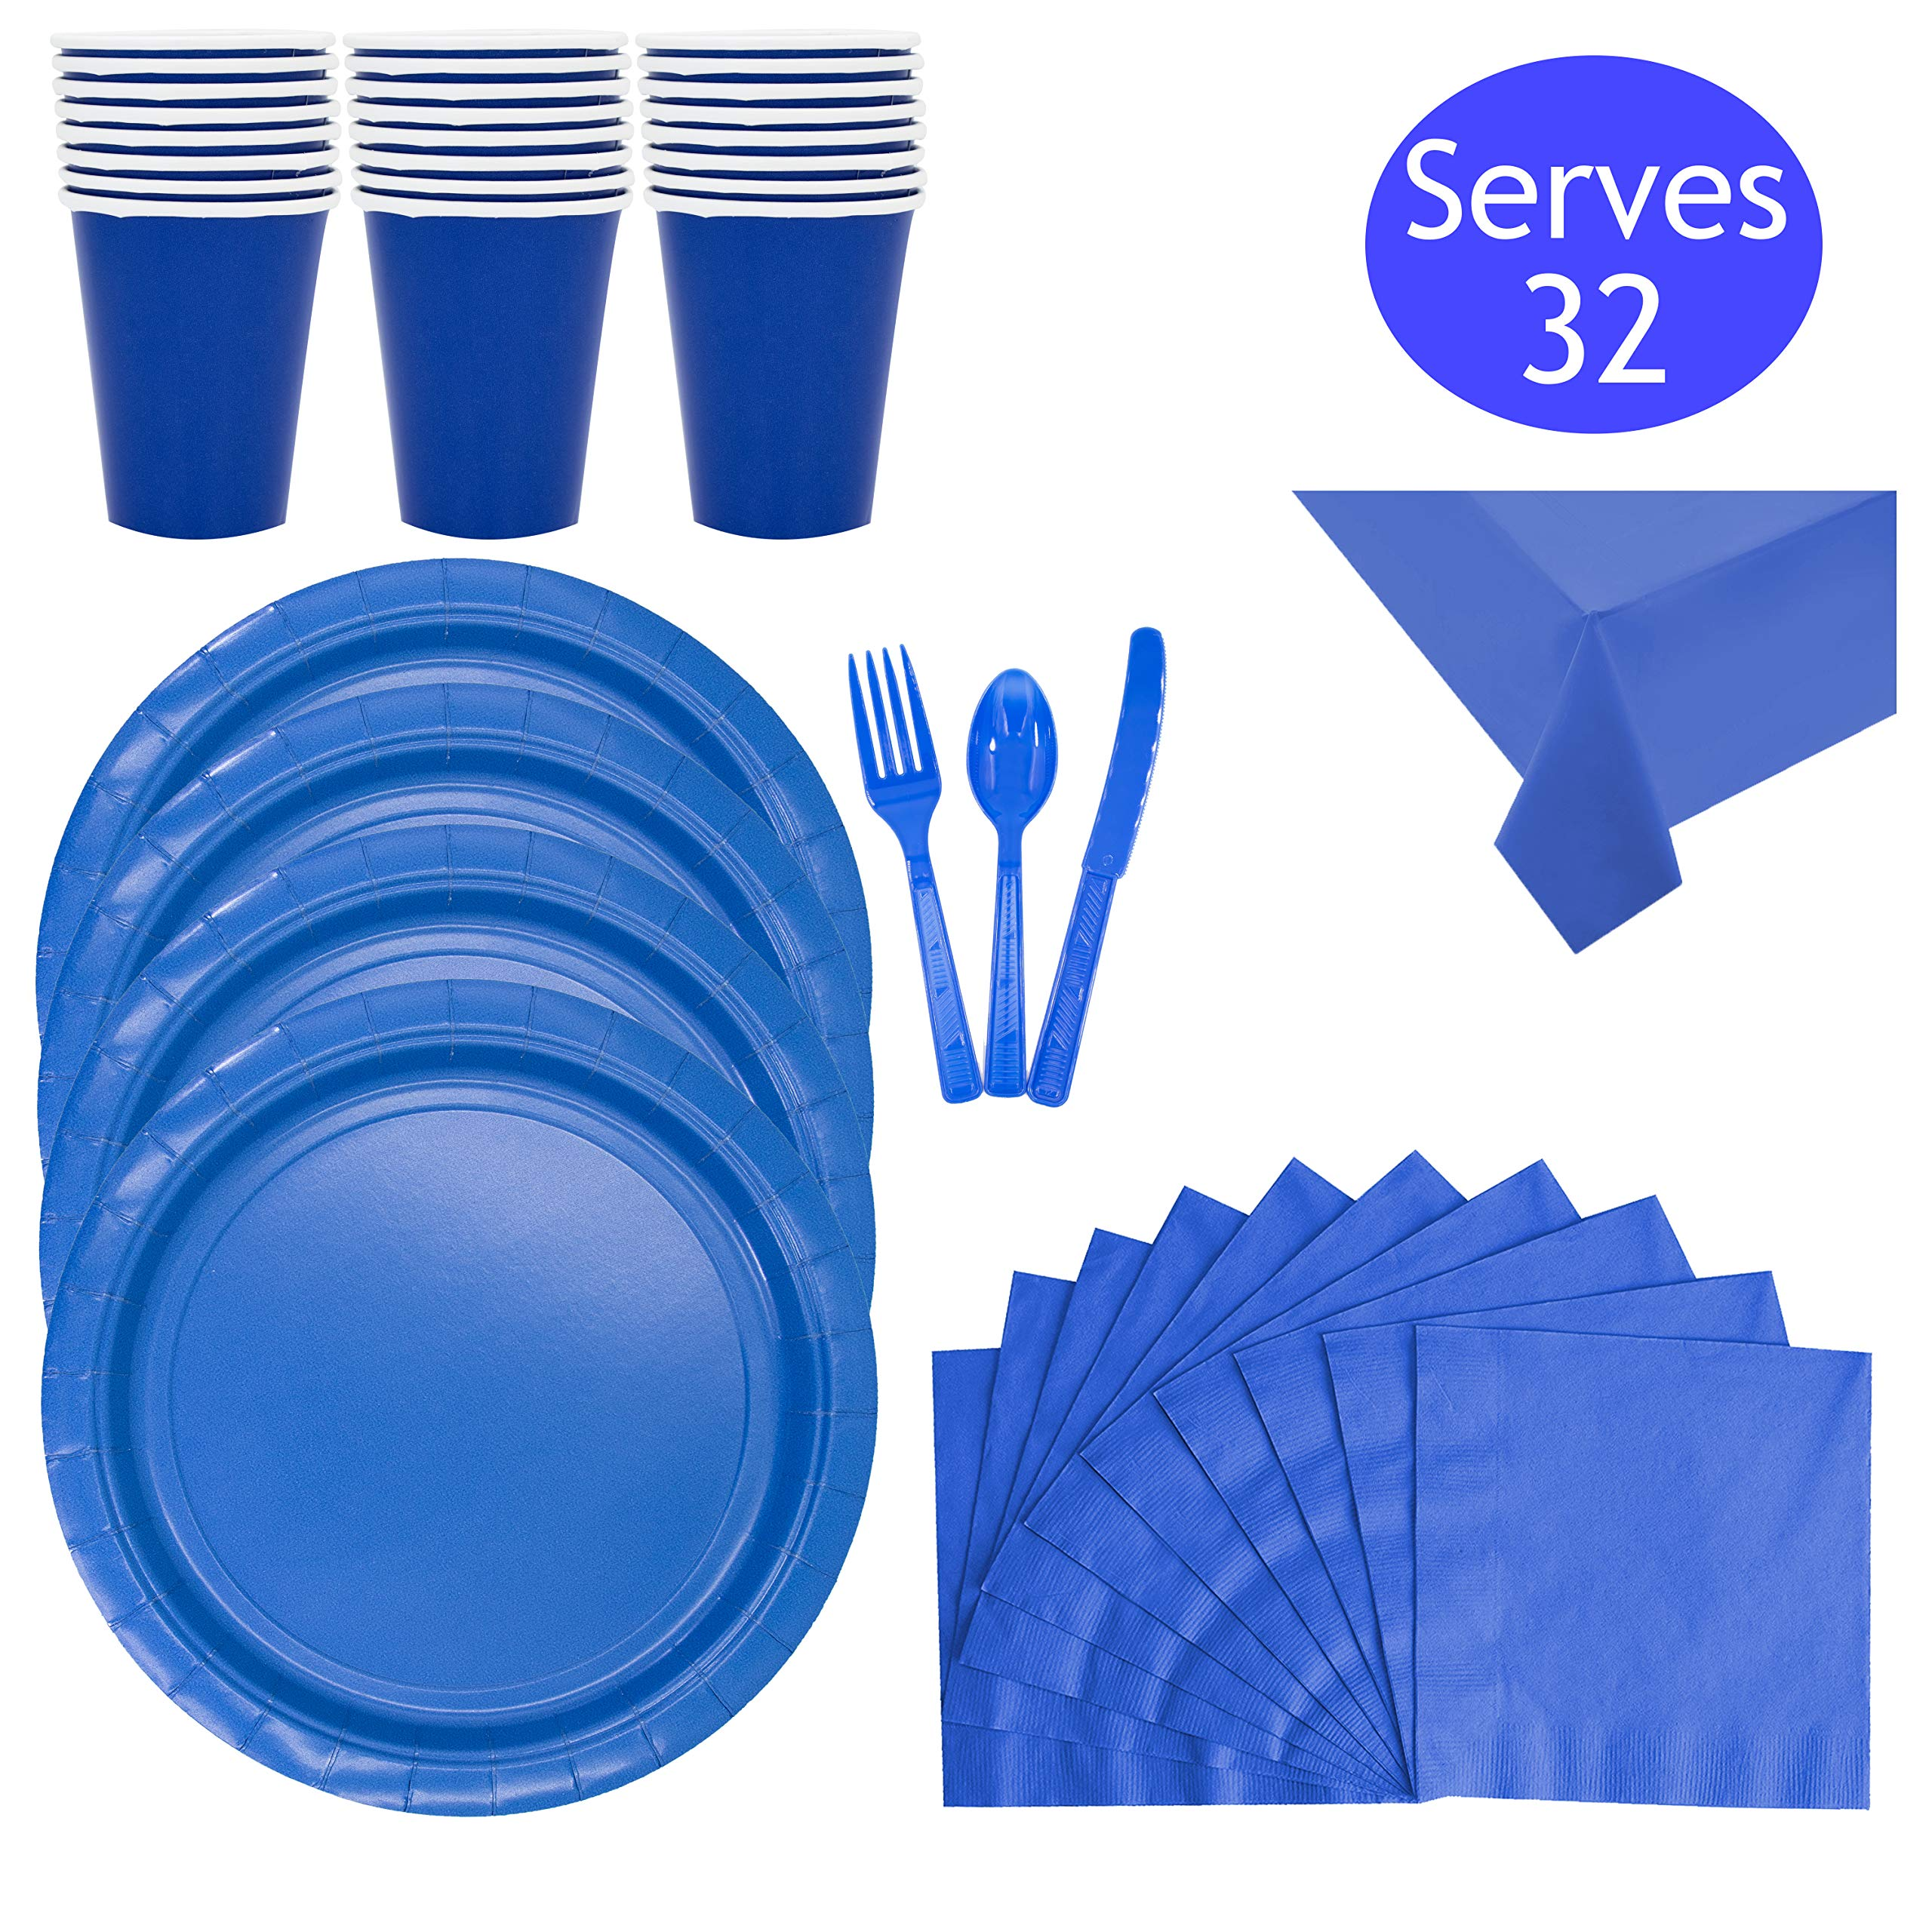 Disposable Blue Dinnerware Party Supplies - Set Serves 32 - Includes Paper Birthday Cups, Plates, Blue Plastic Forks, Spoons, Knives, Napkins and Two Table Clothes